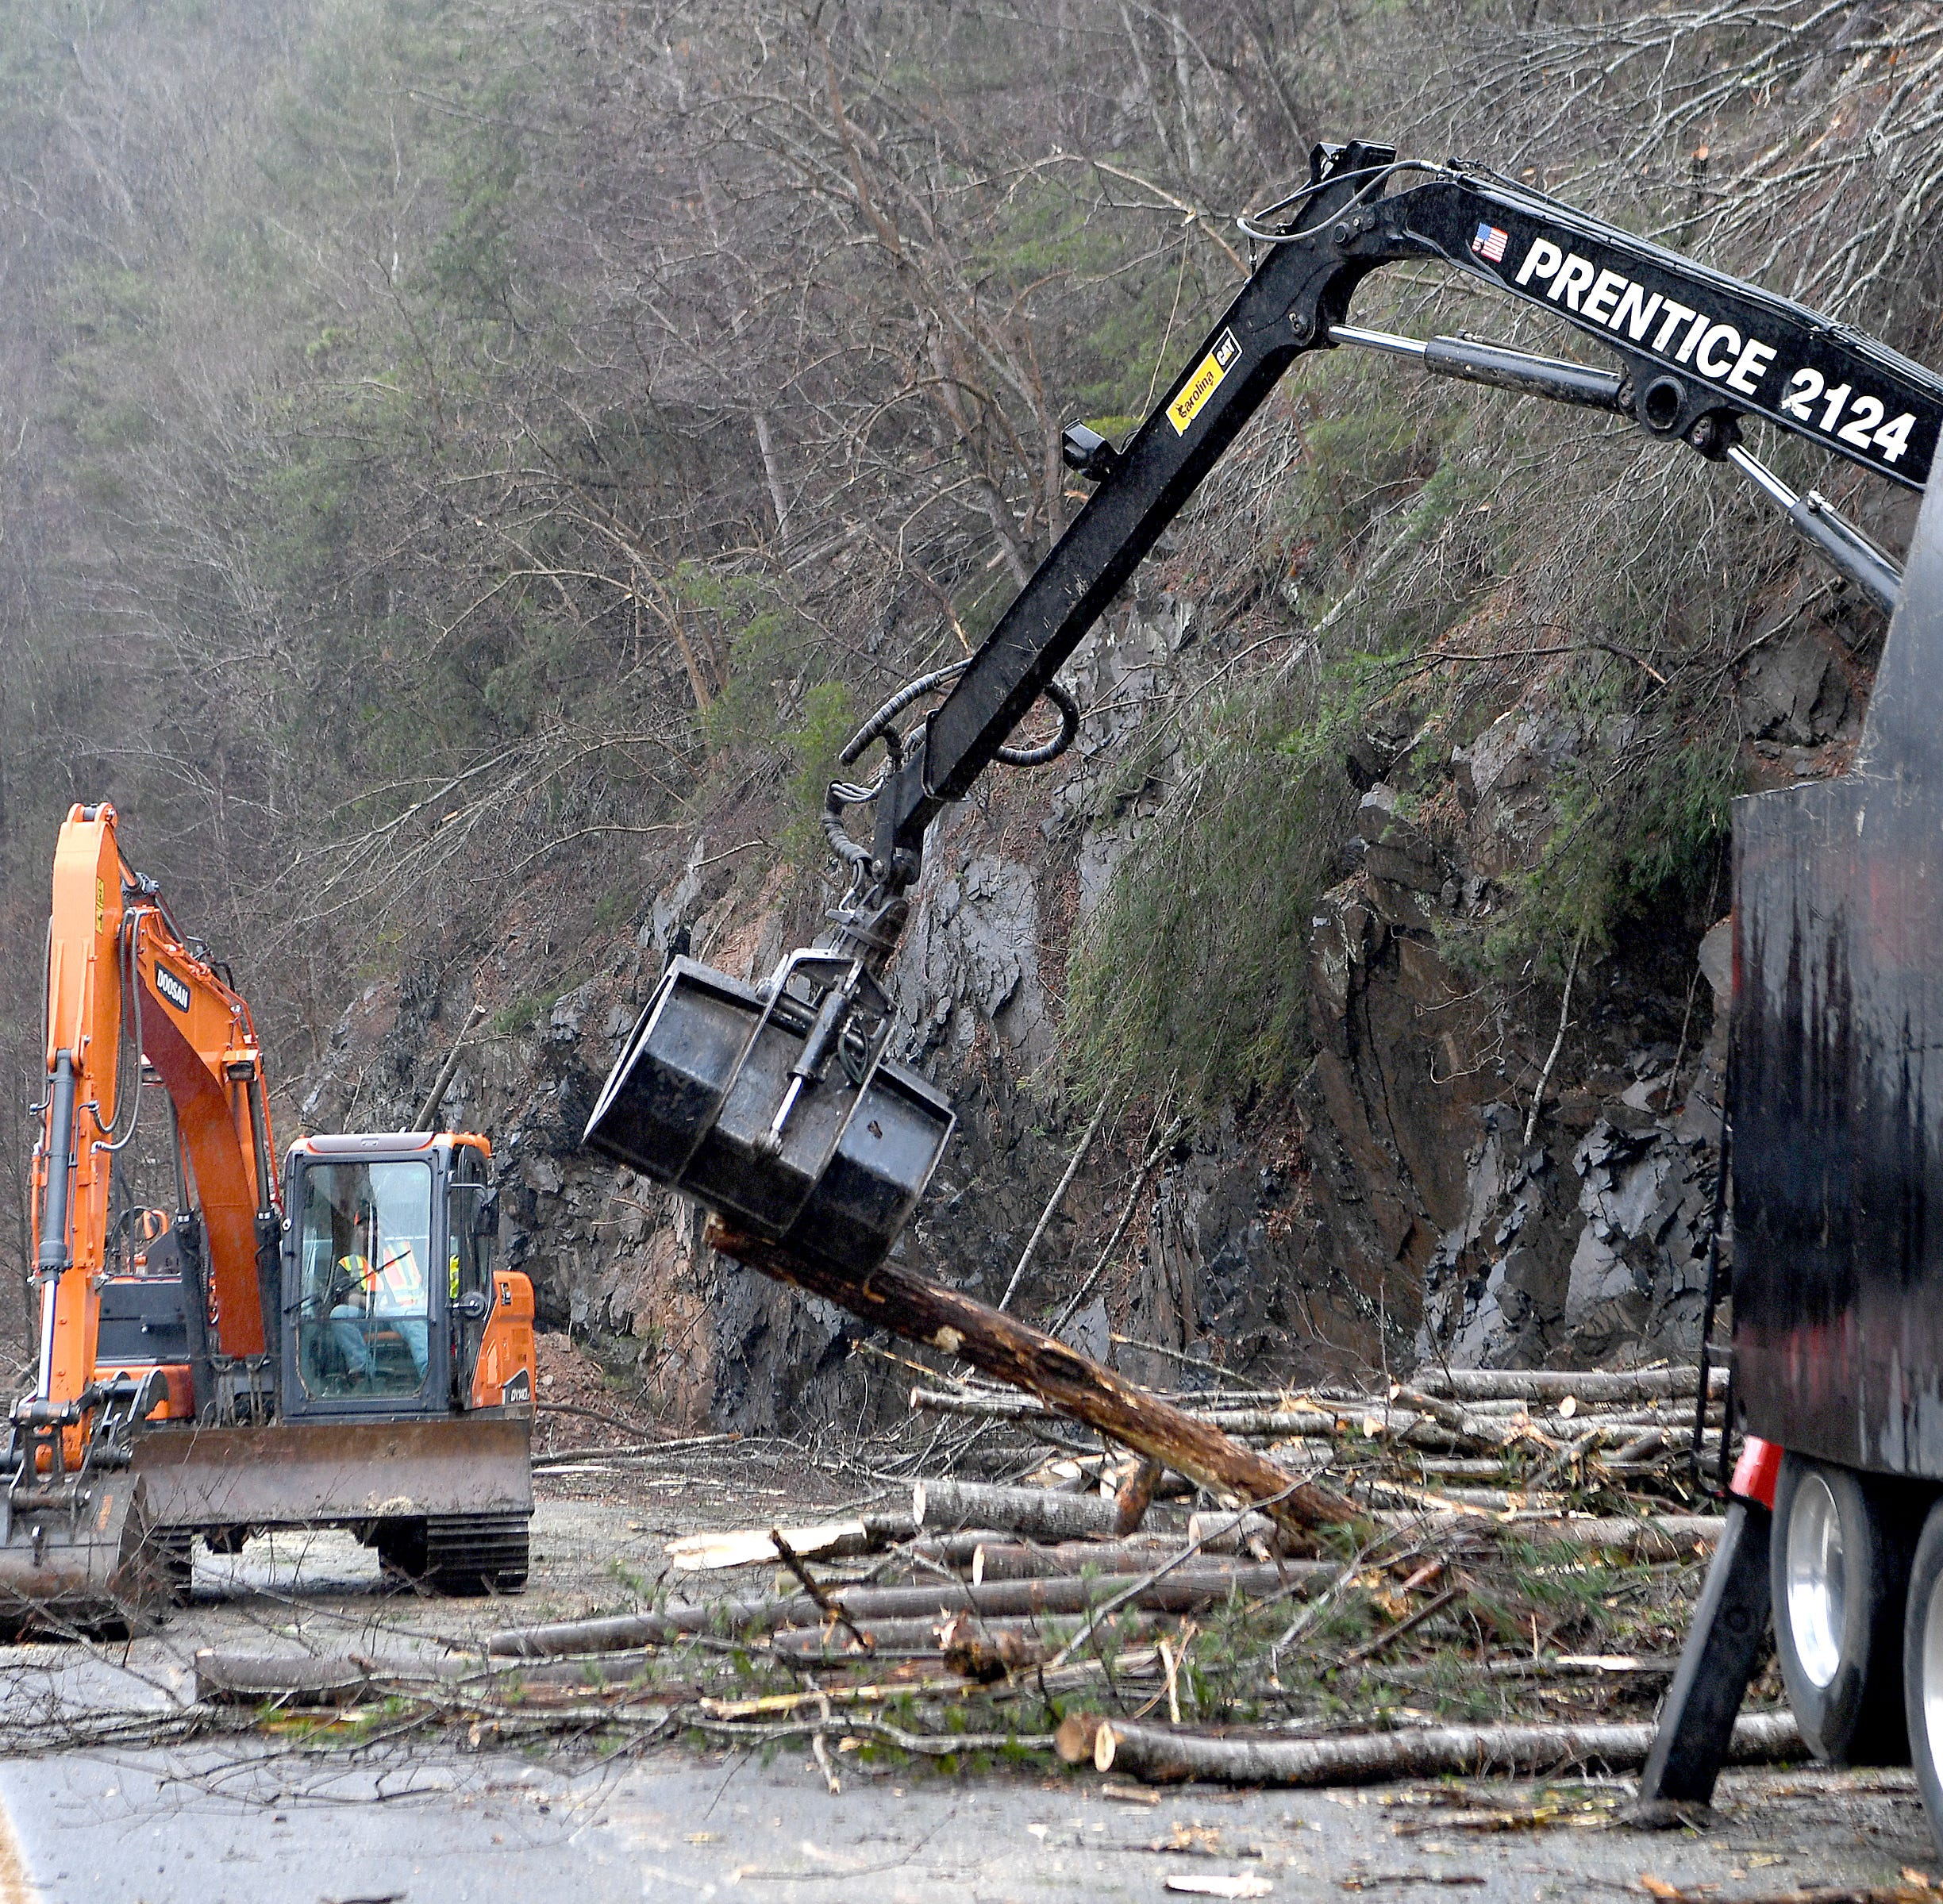 NCDOT works to open I-40 'as soon as possible' after rockslide blocks all lanes in Haywood